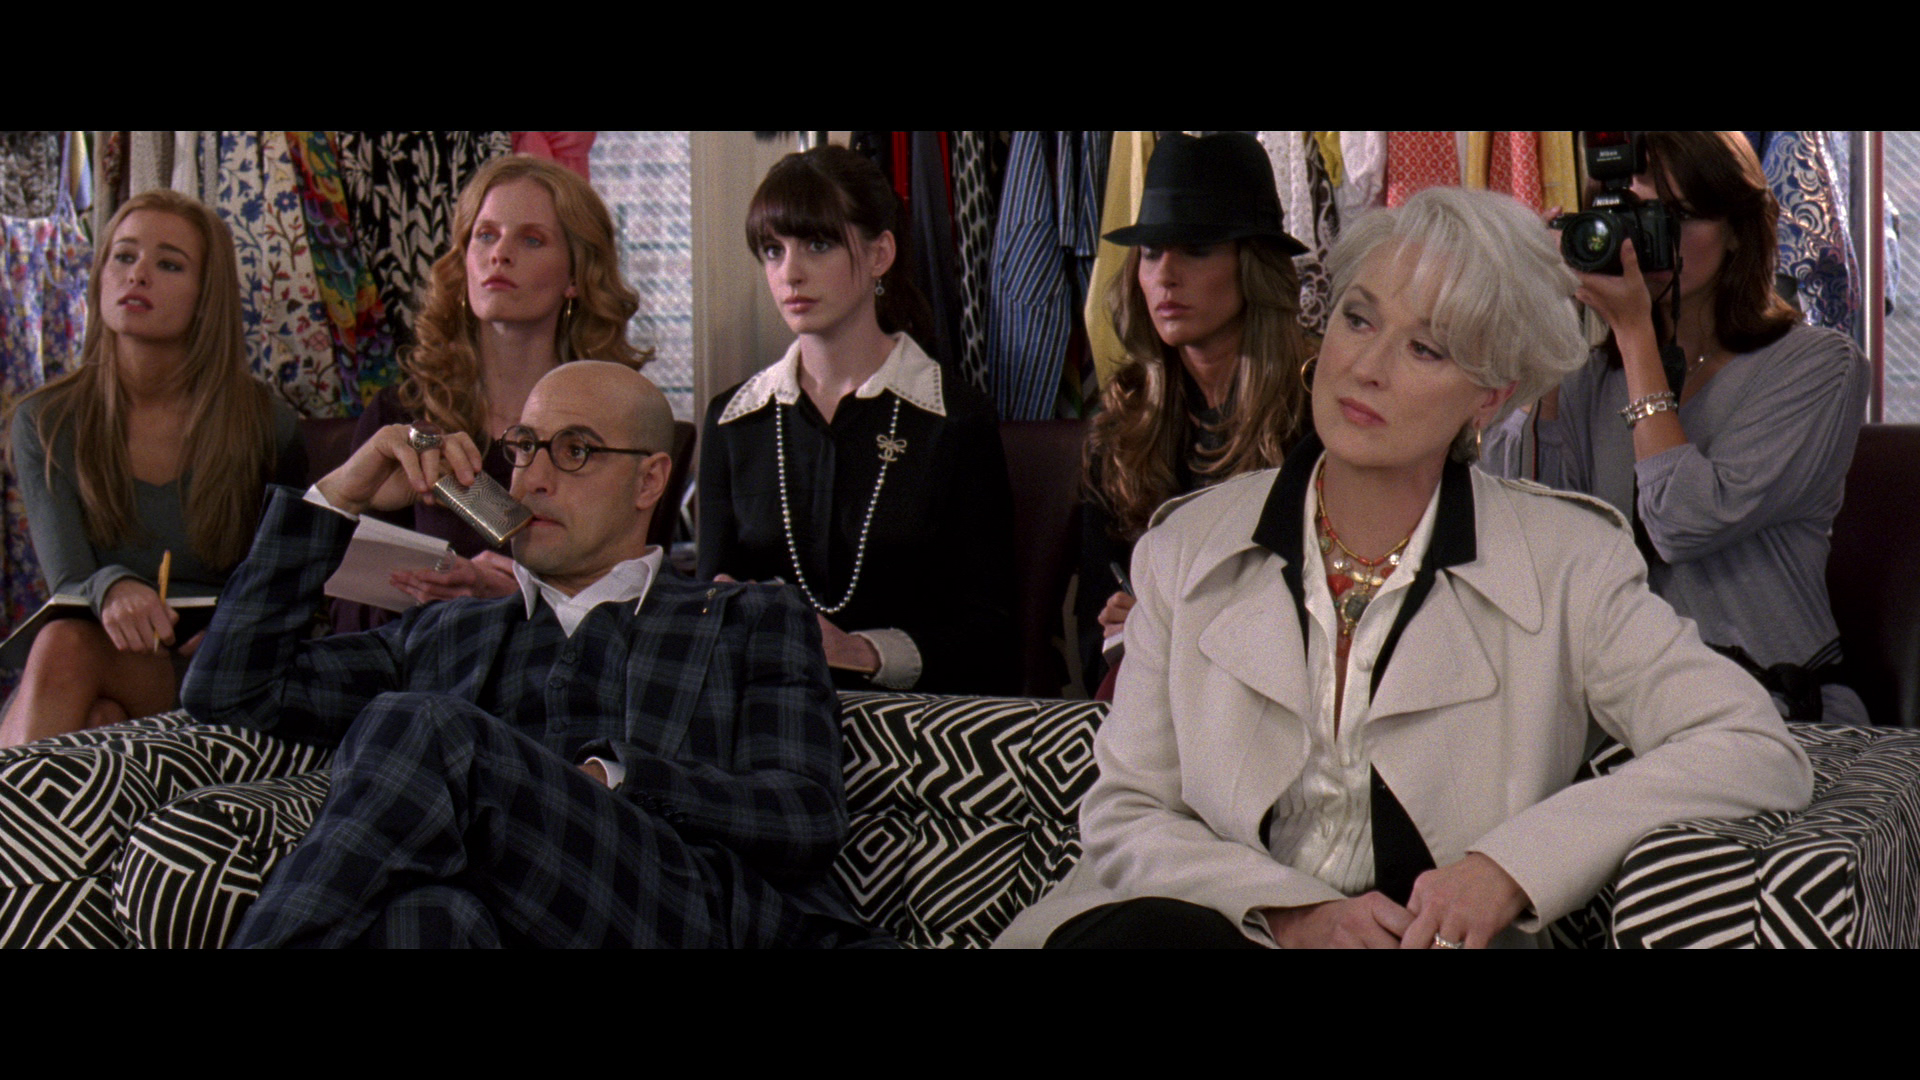 devil wears prada essay A decade has passed, and lauren weisberger still hasn't learned how to write revenge wears prada: the devil returns suffers from the same problem that plagued the devil wears prada in 2003 great characters are undermined by barely serviceable prose.